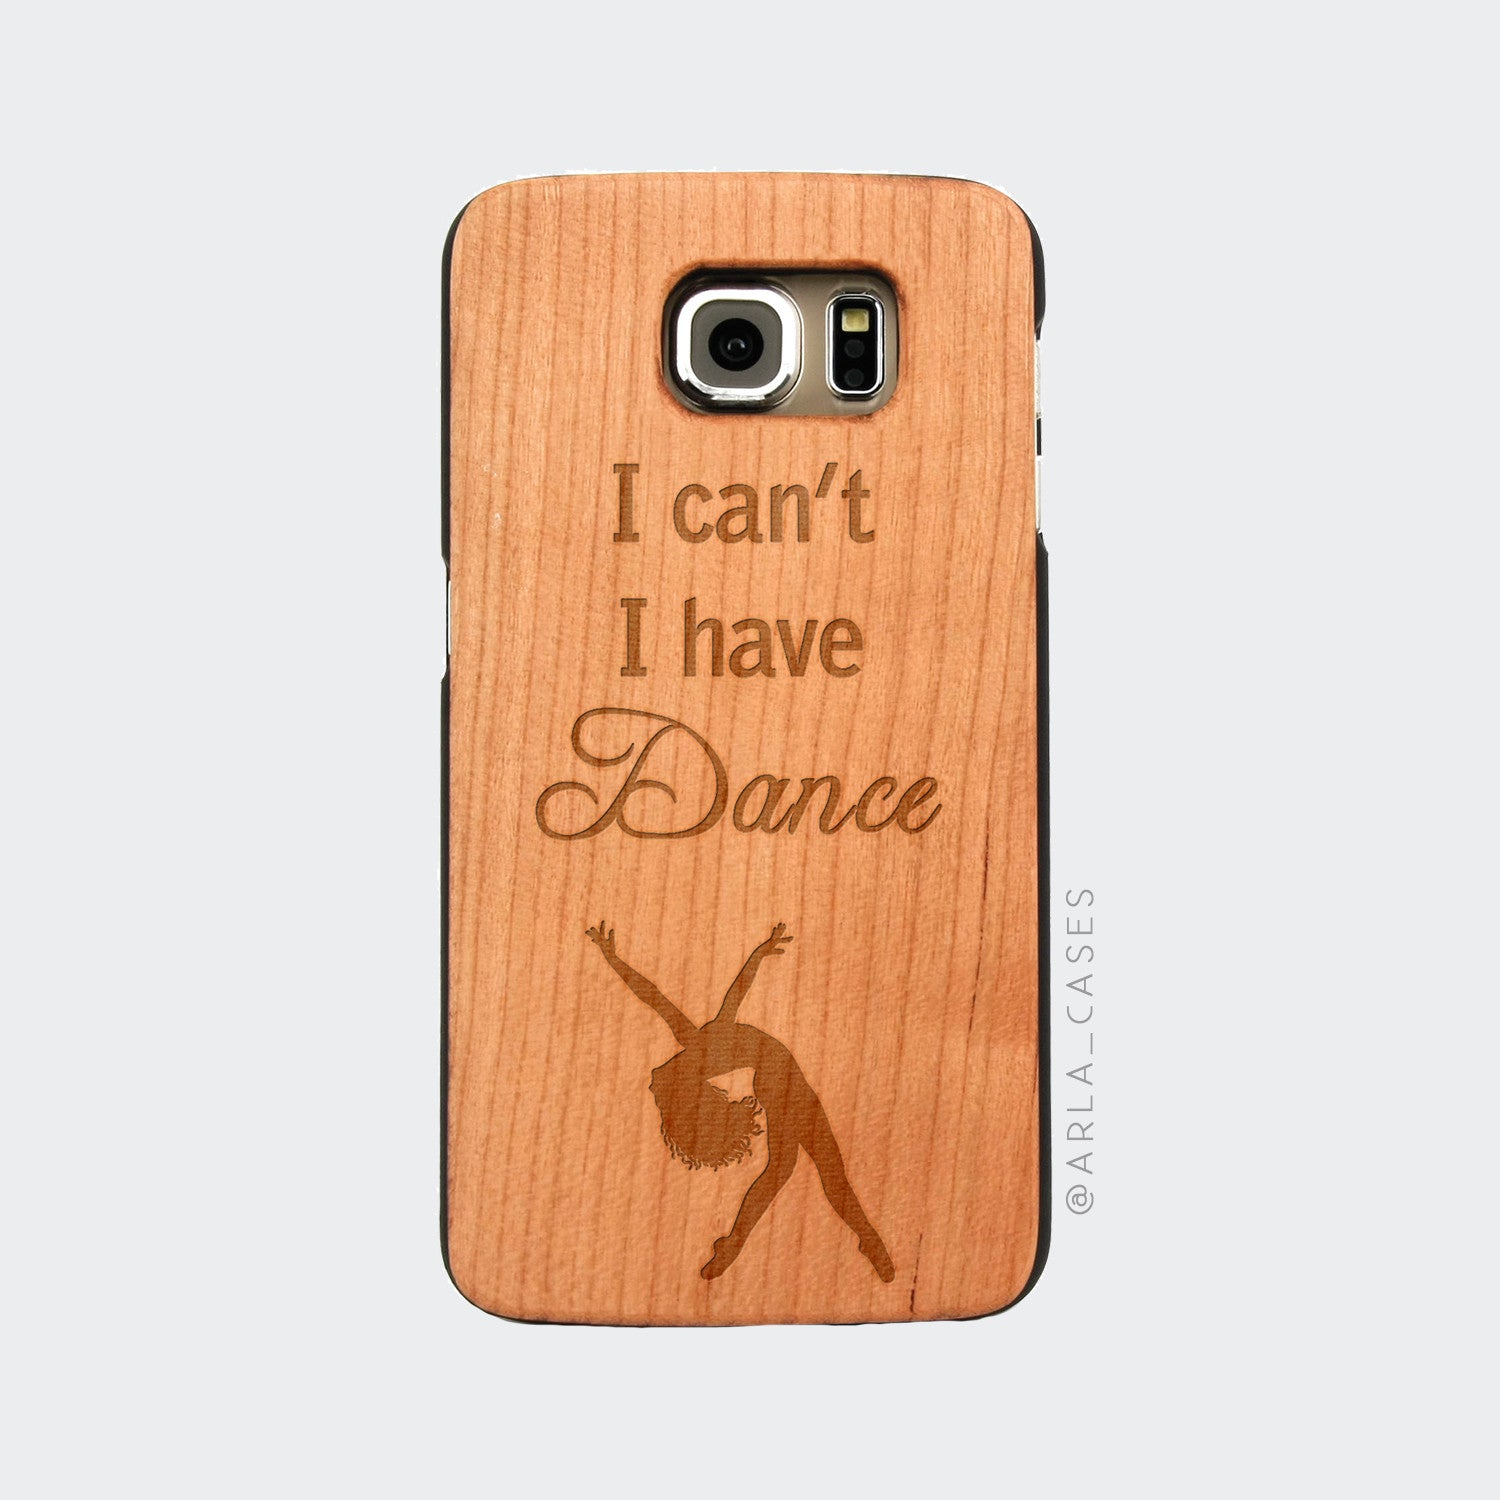 I Can't I Have Dance Engraved on Wood Galaxy Case